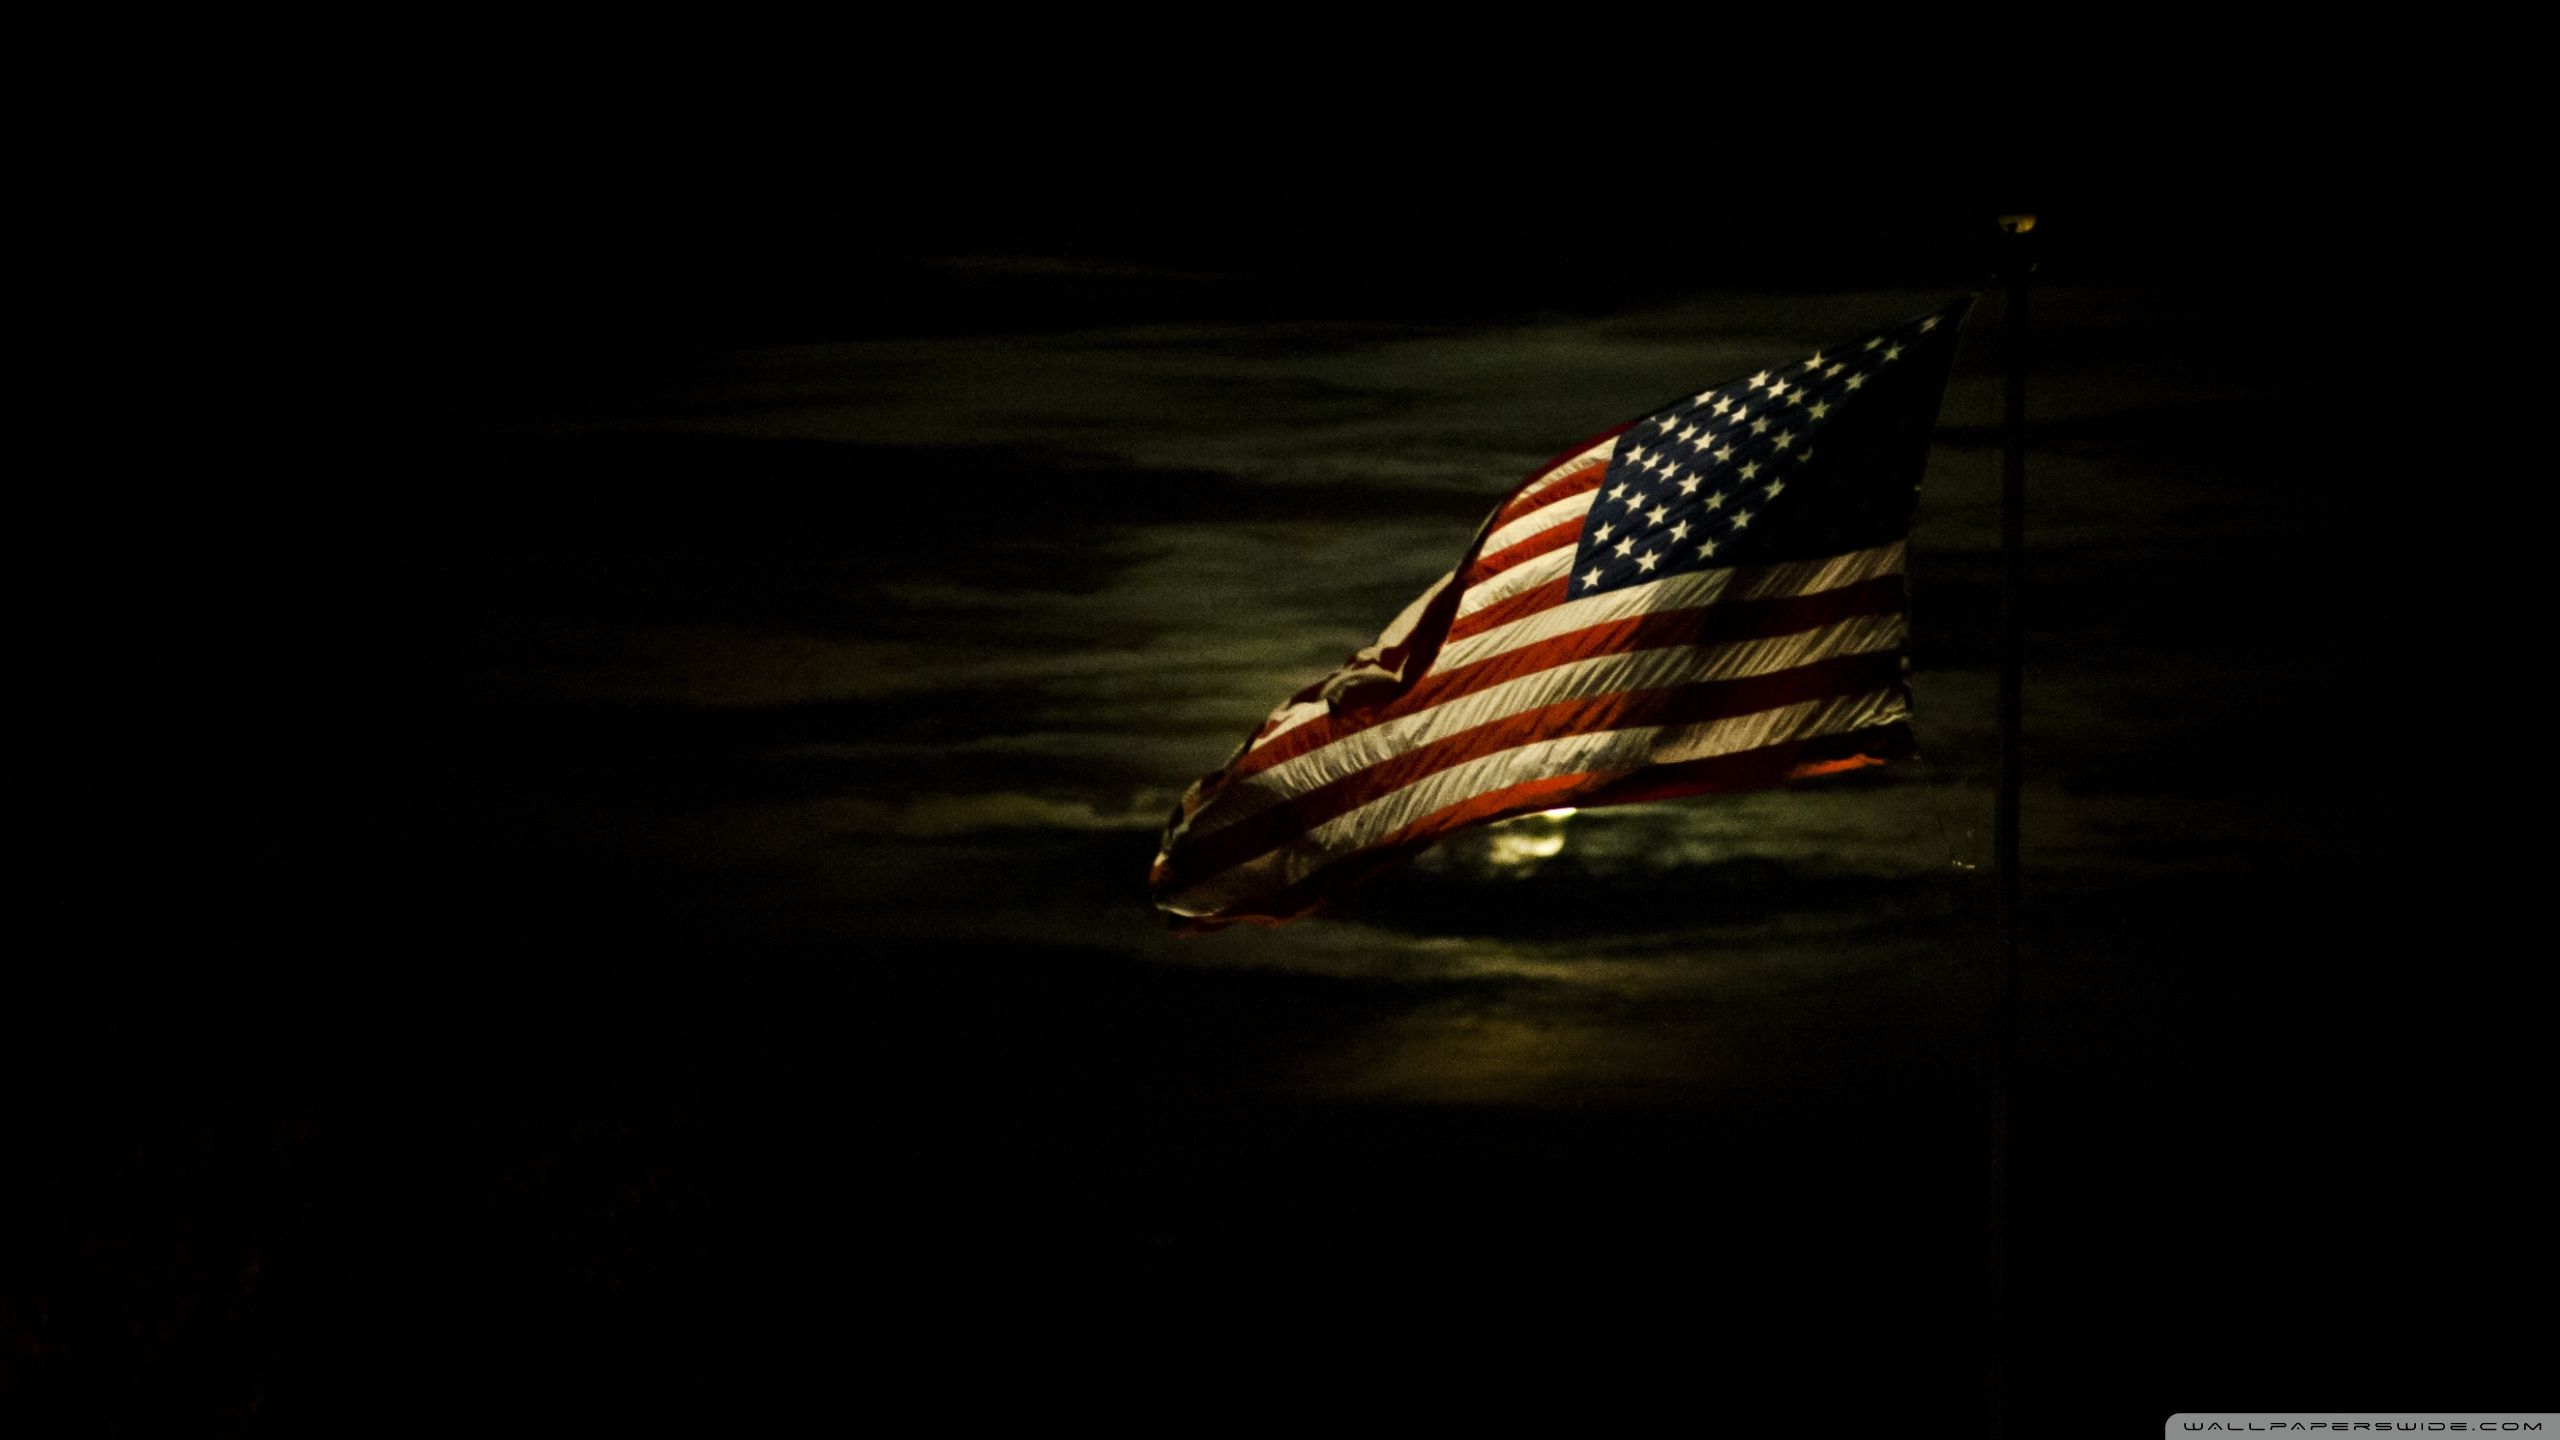 Military American Flag Wallpapers Top Free Military American Flag Backgrounds Wallpaperaccess